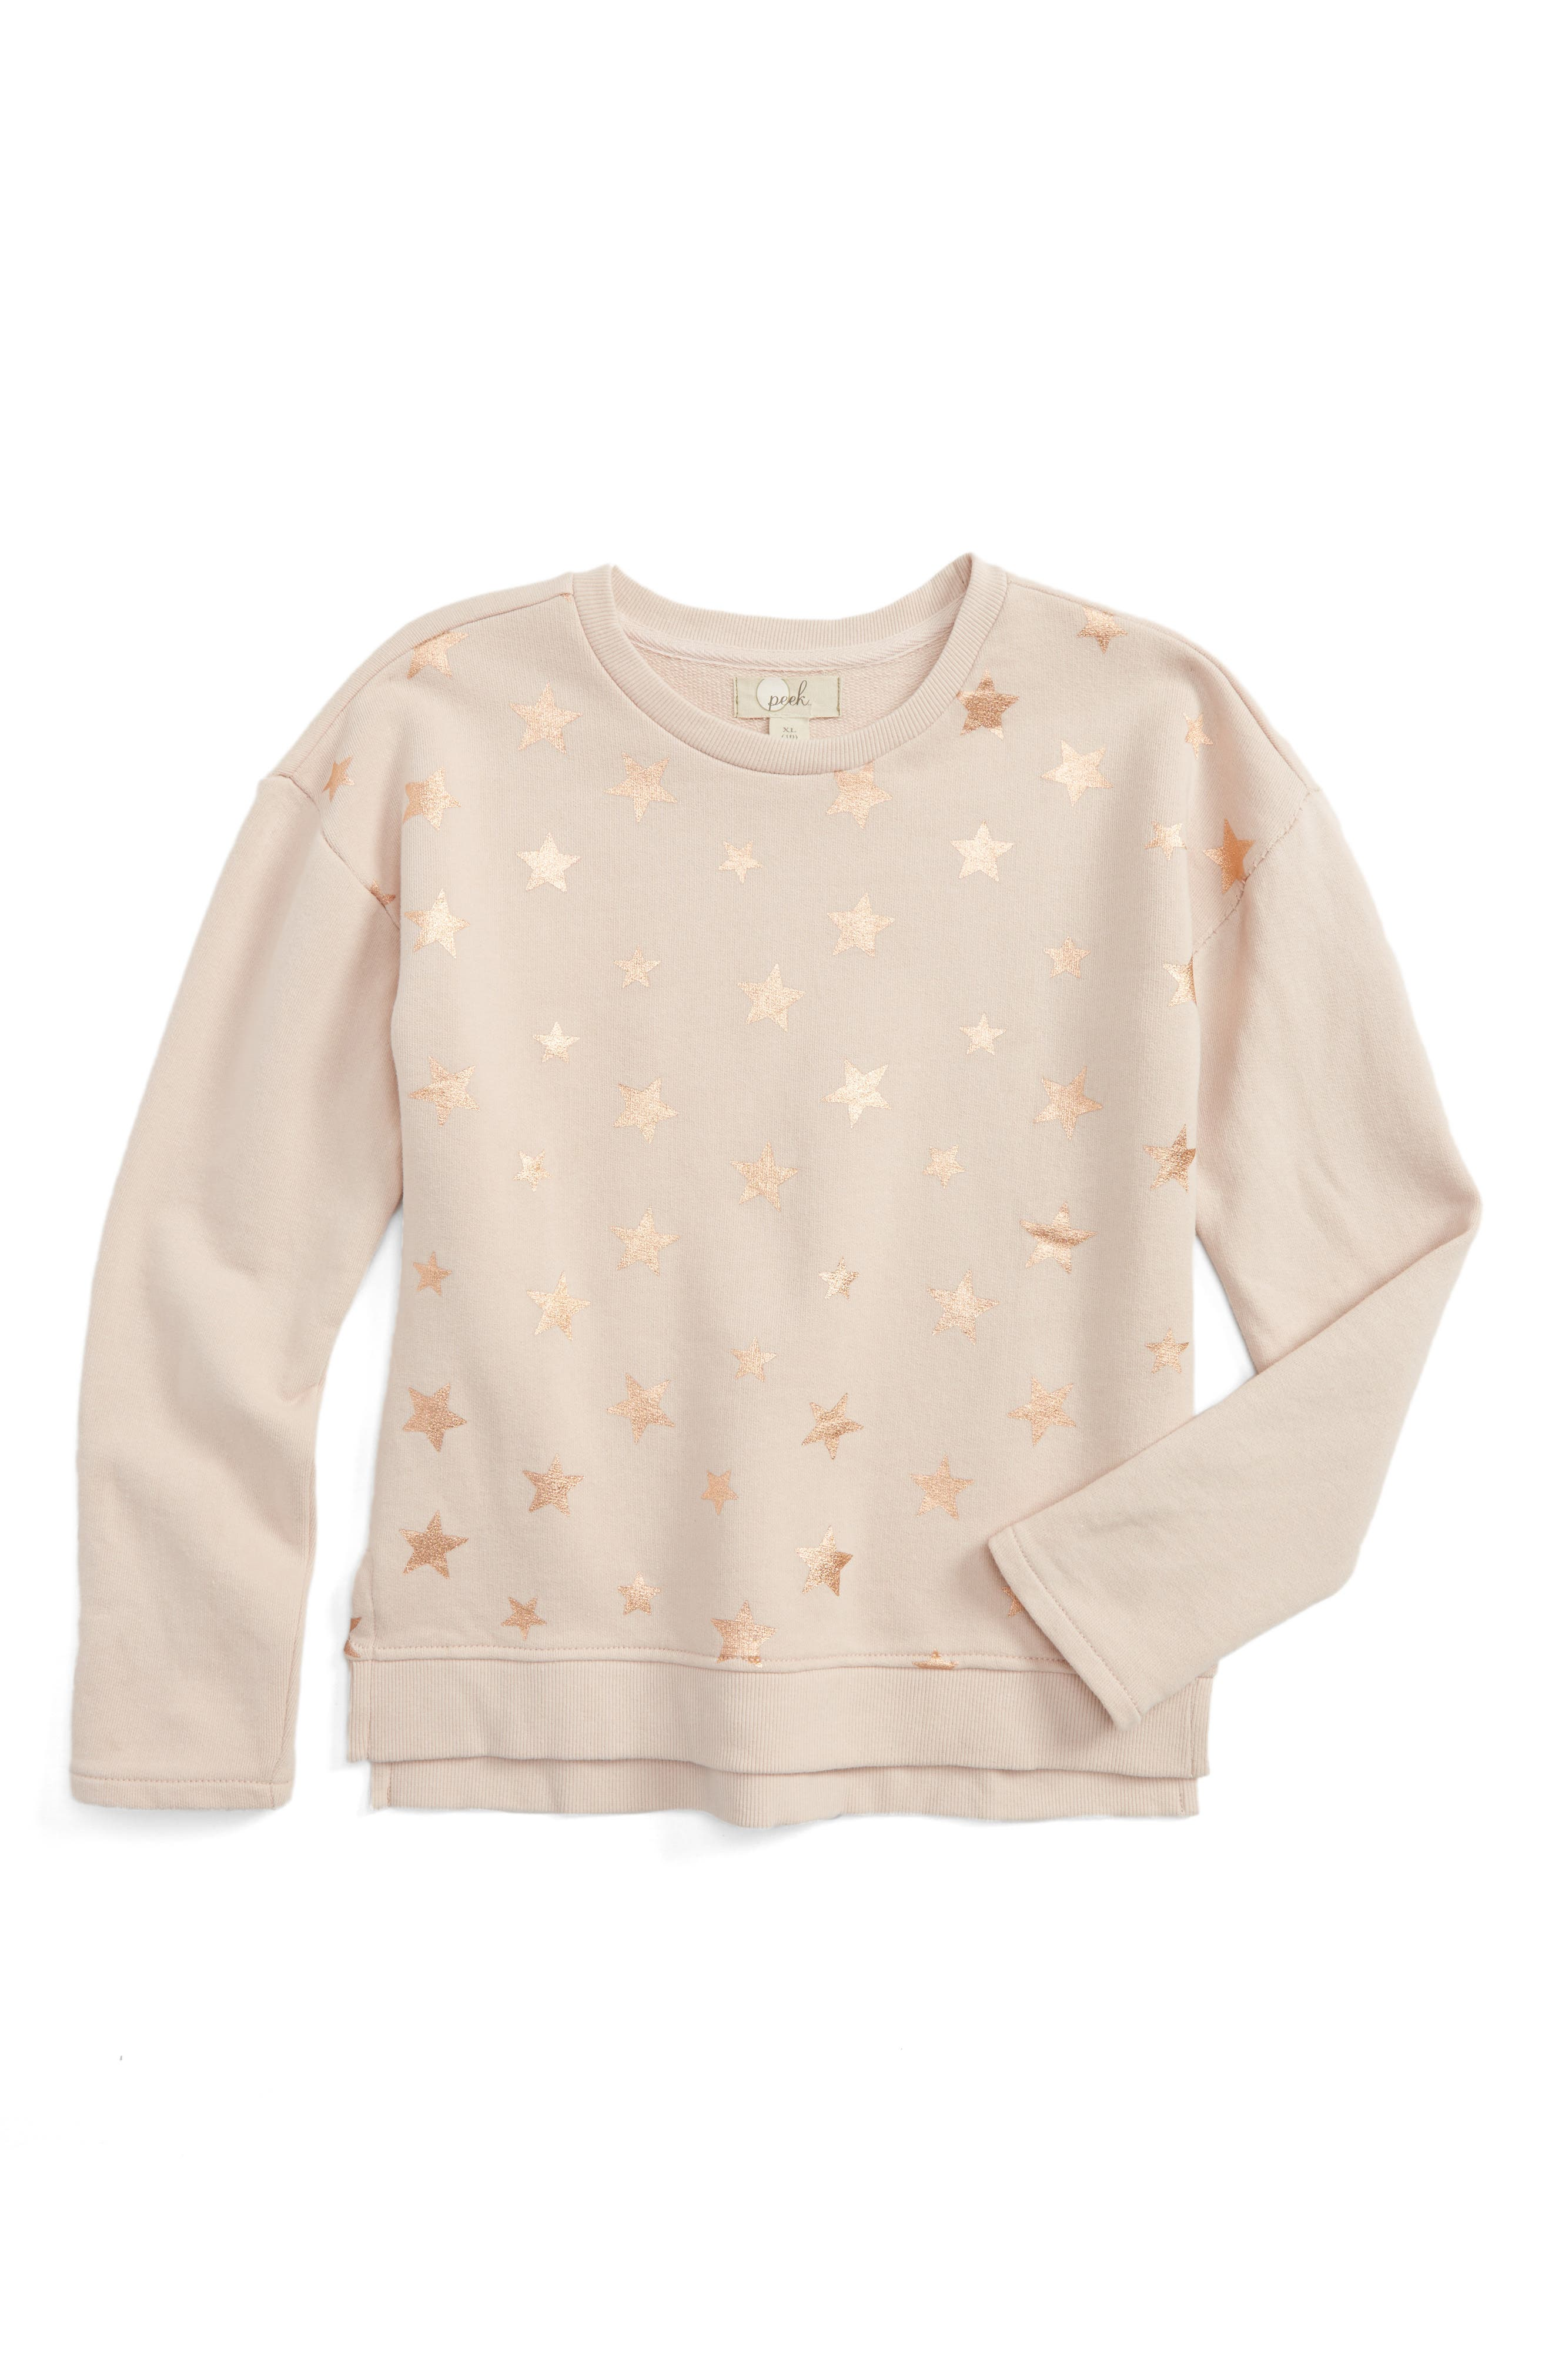 Peek Star Print Sweatshirt (Toddler Girls, Little Girls & Big Girls)